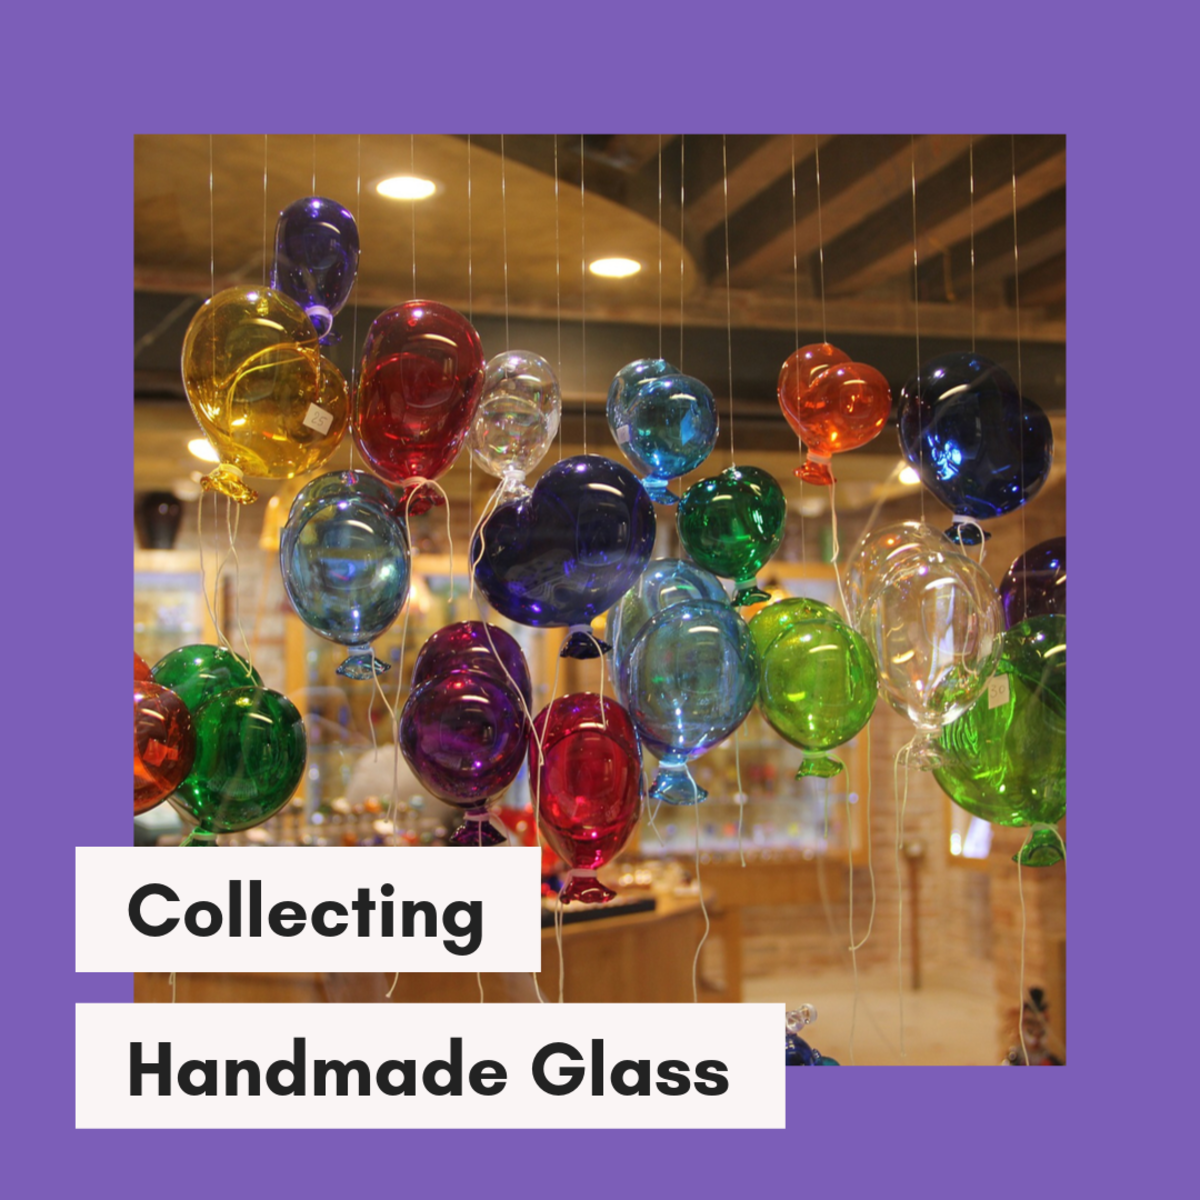 This article will break down some of the basics of how glass is blown and spun, while also taking a look at the hobby of collecting glass art.